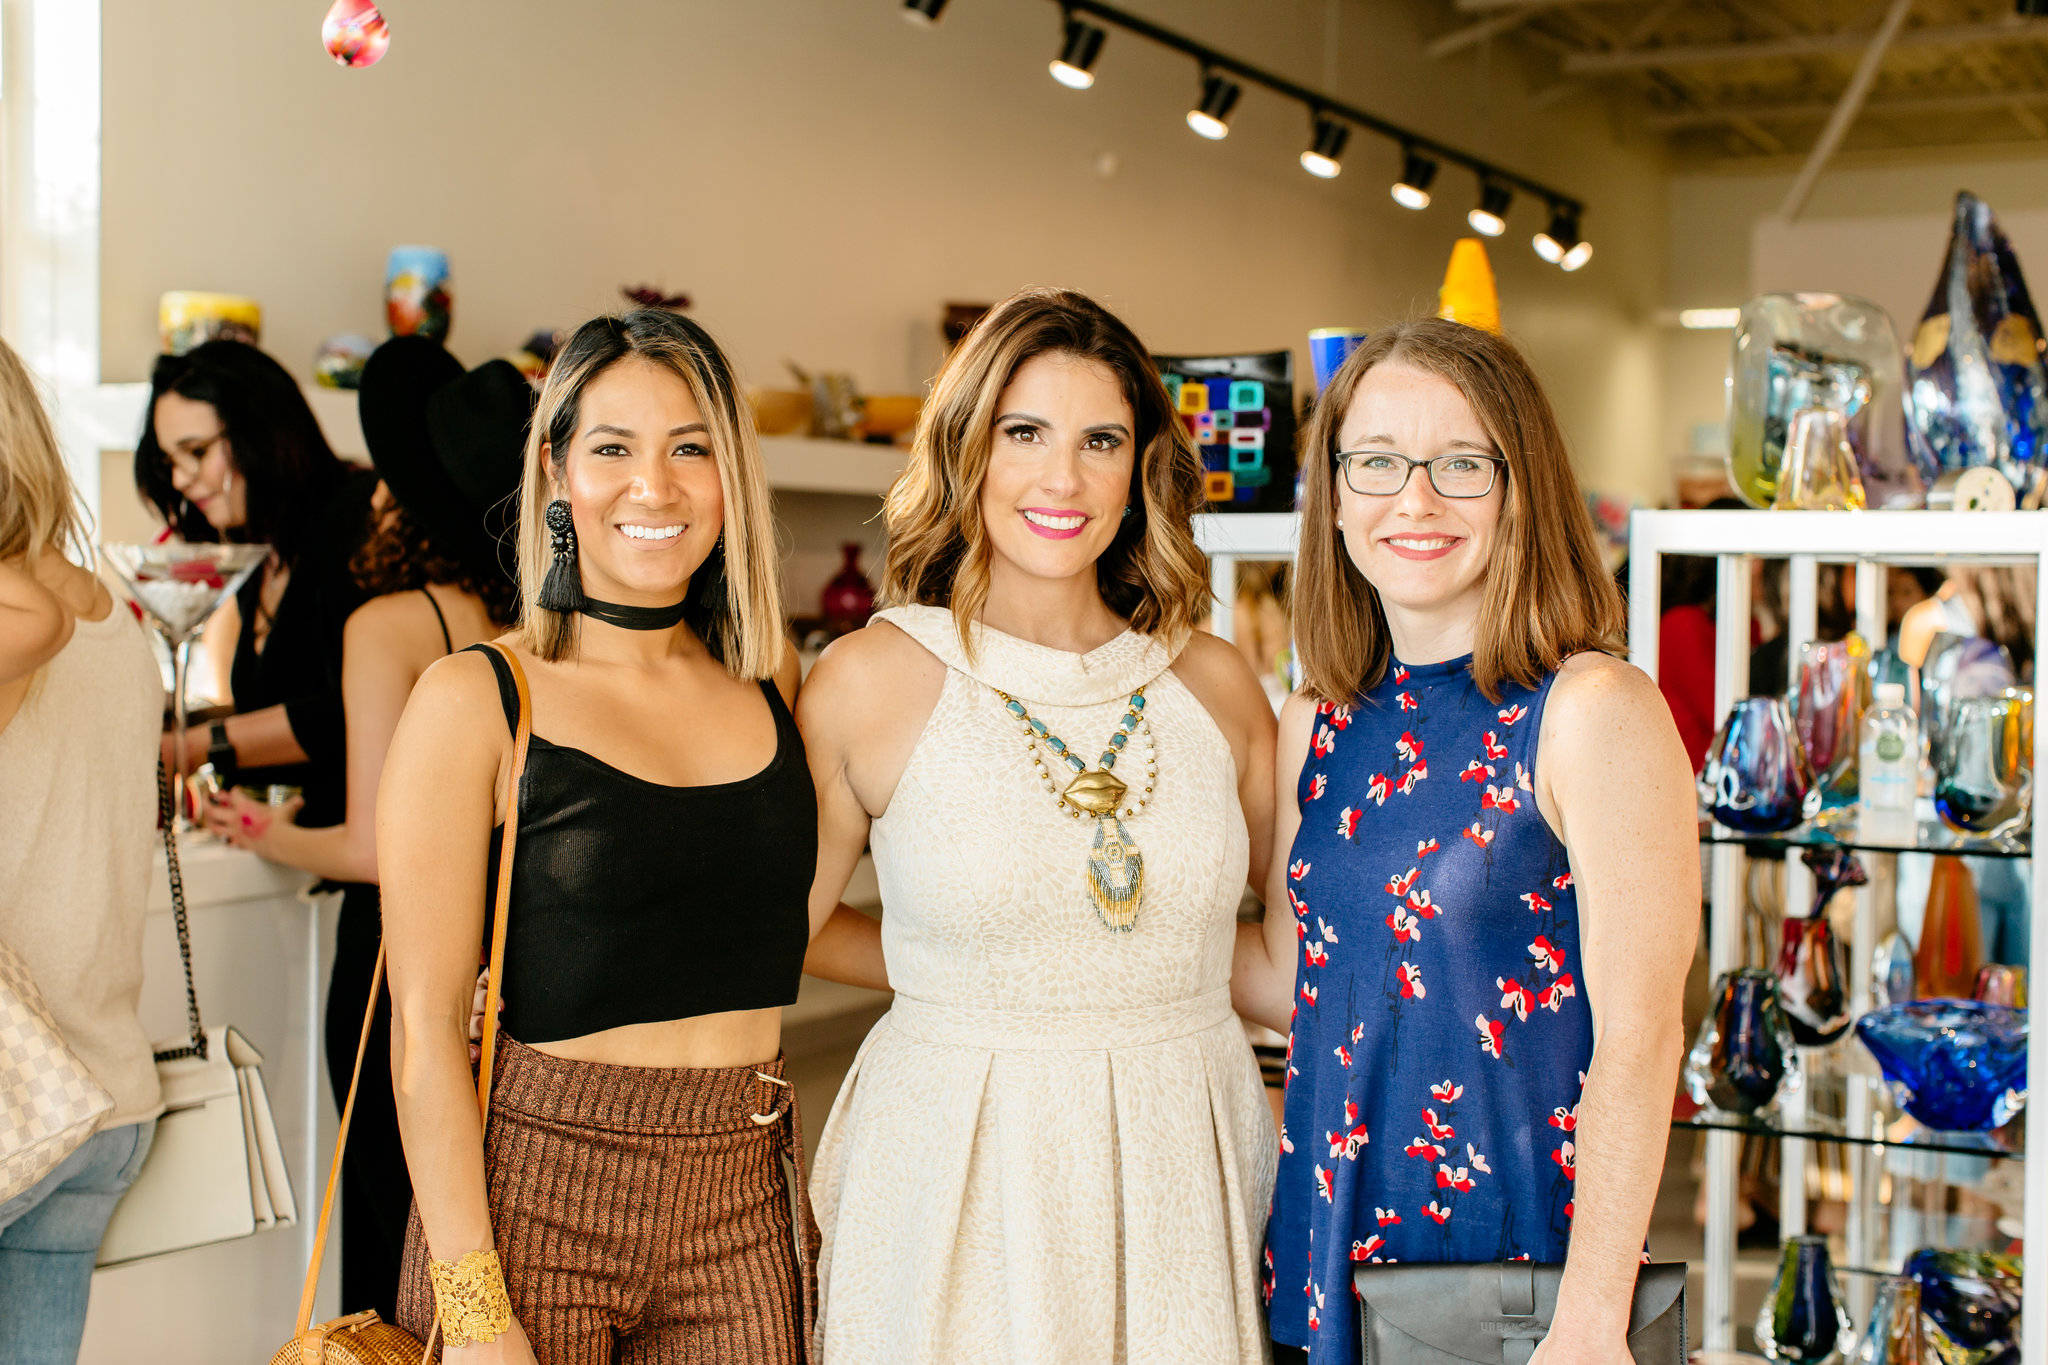 Alexa-Vossler-Photo_Dallas-Event-Photographer_Brite-Bar-Beauty-2018-Lipstick-Launch-Party-140.jpg